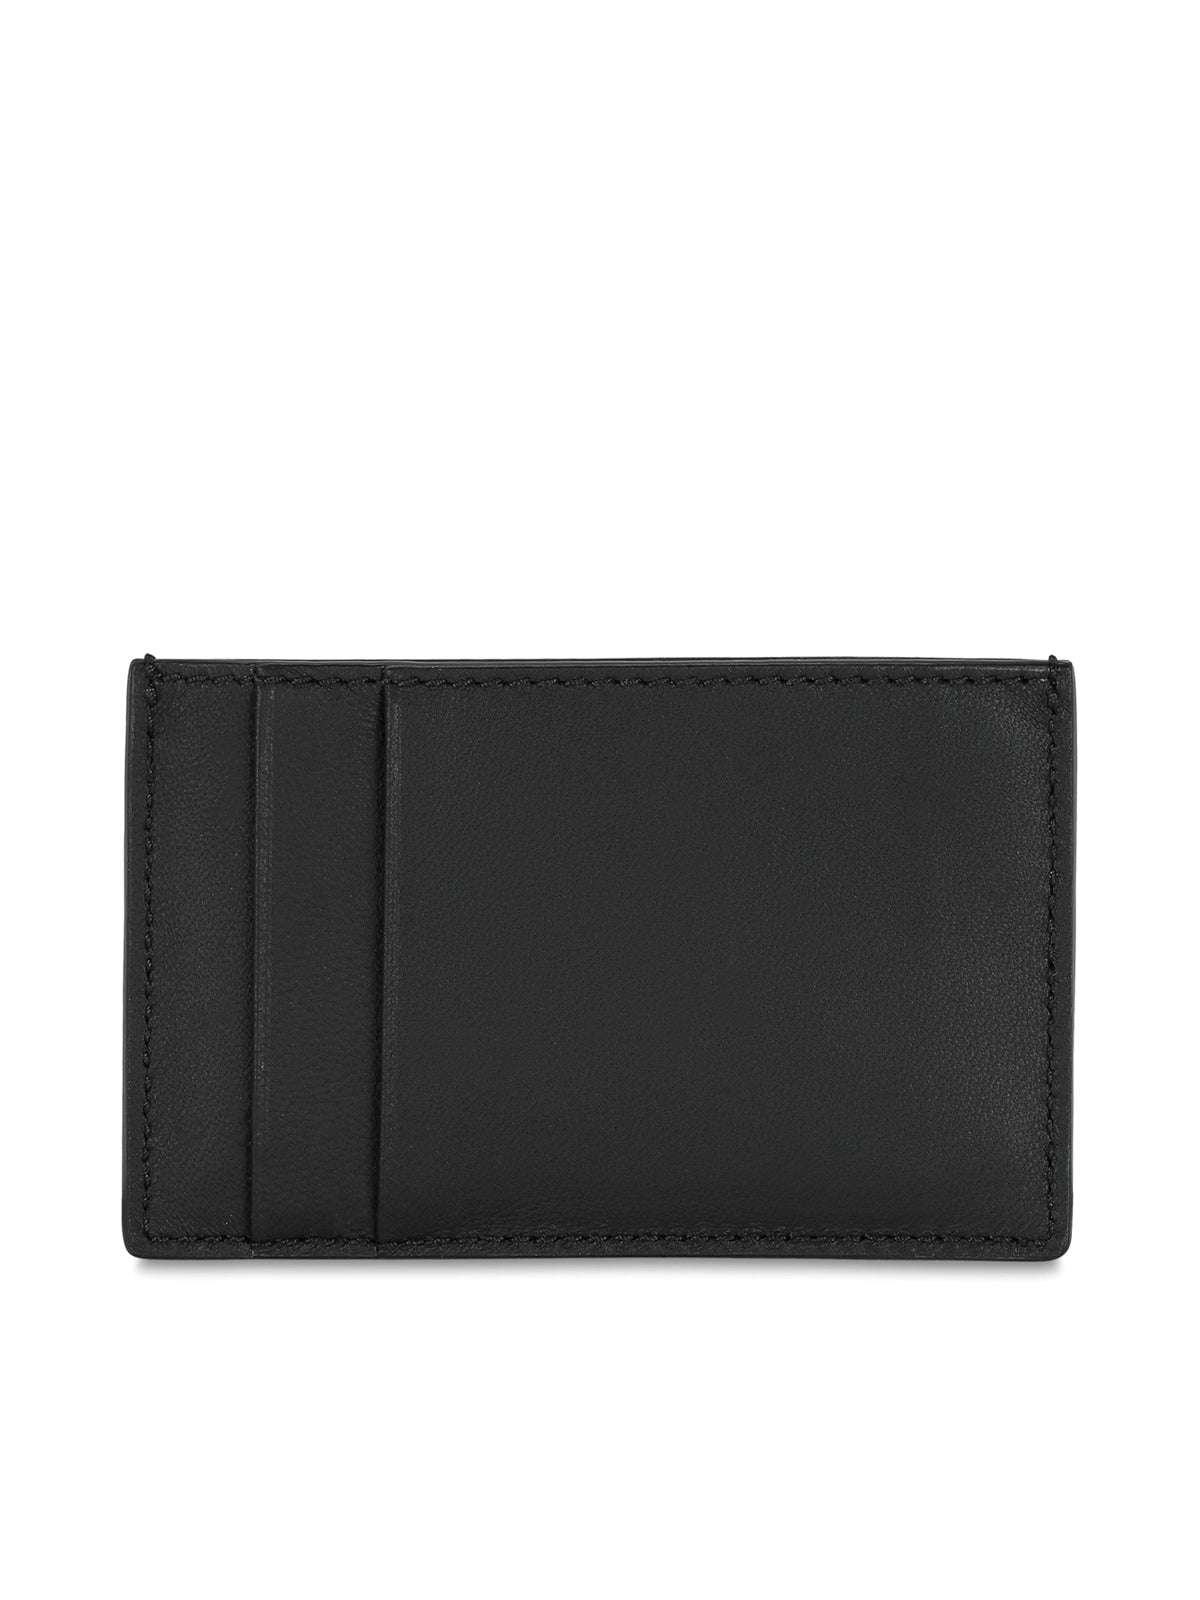 McQueen Graffit credit card holder